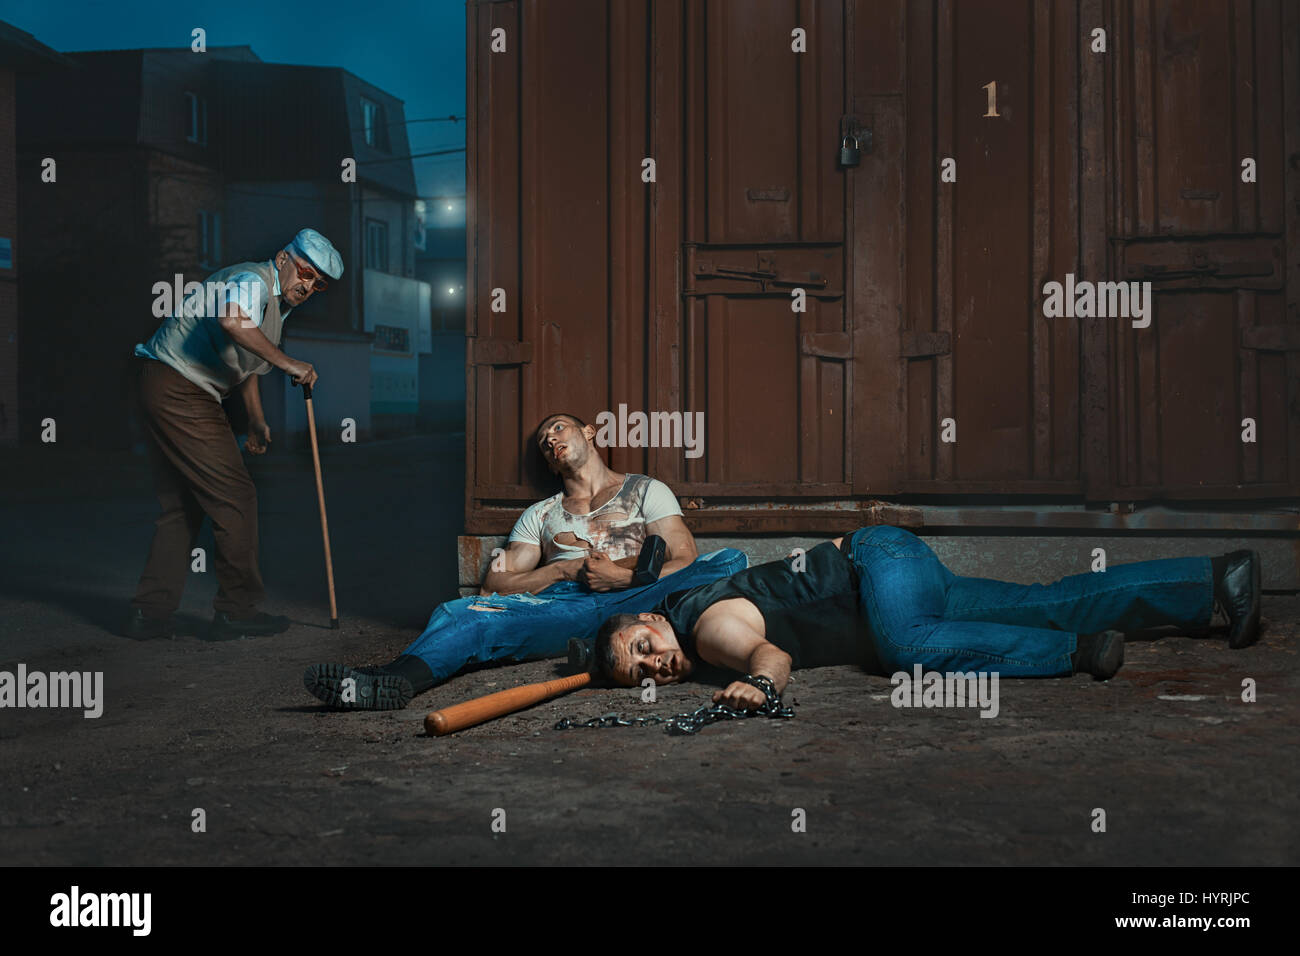 Old man beaten by thugs on the street at night. - Stock Image